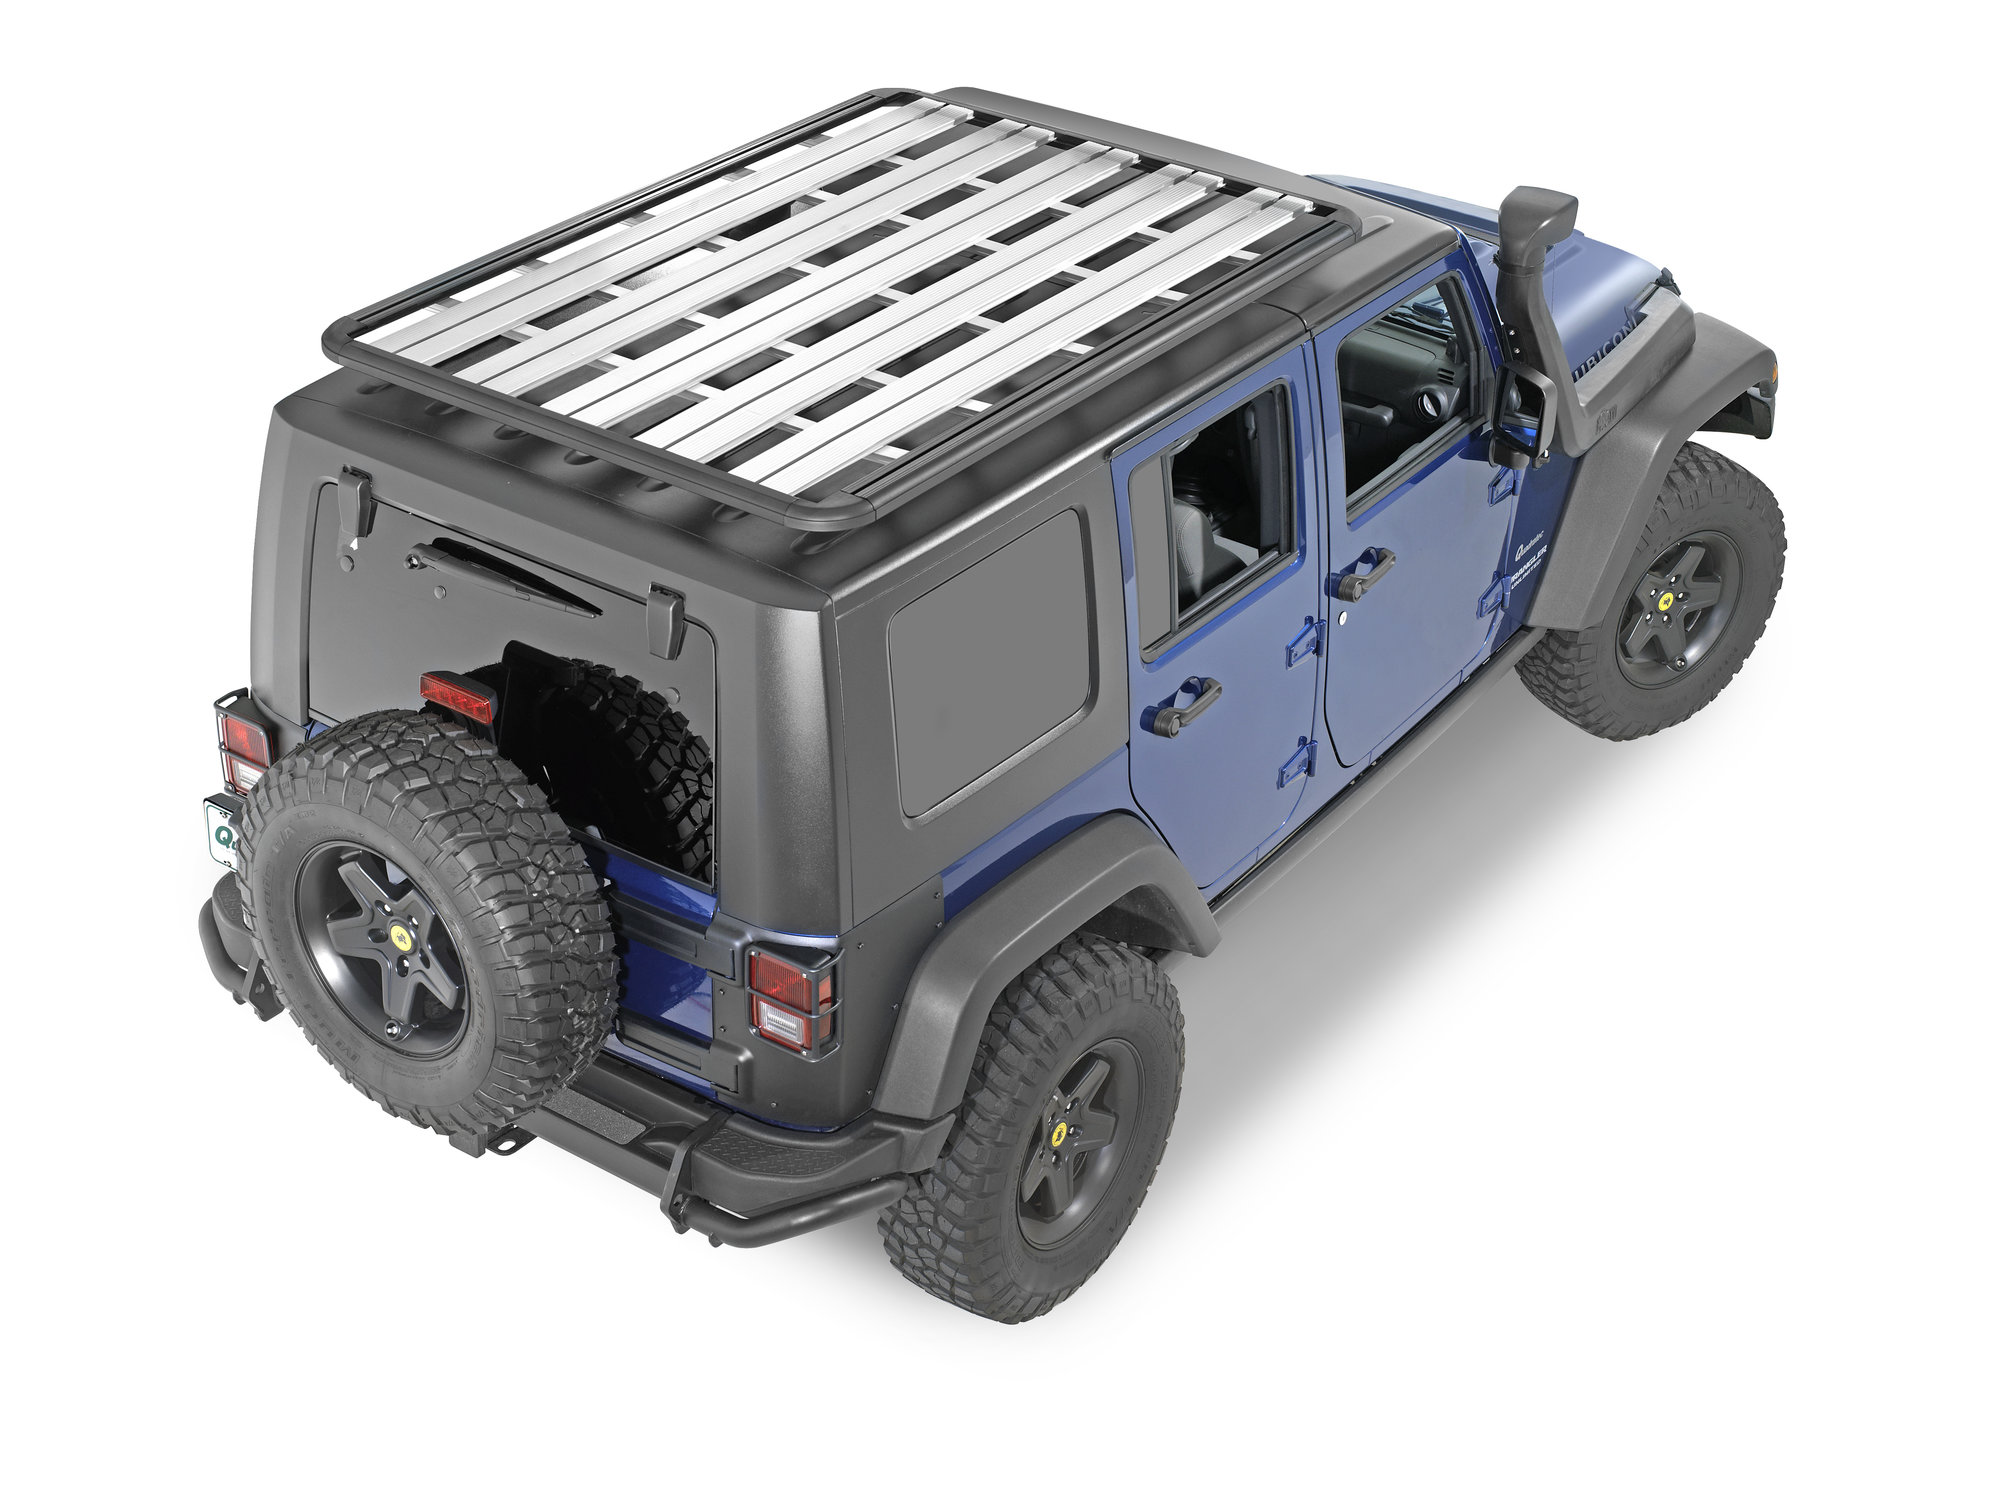 Aev 10307010aa Roof Rack For 07 18 Jeep Wrangler Unlimited